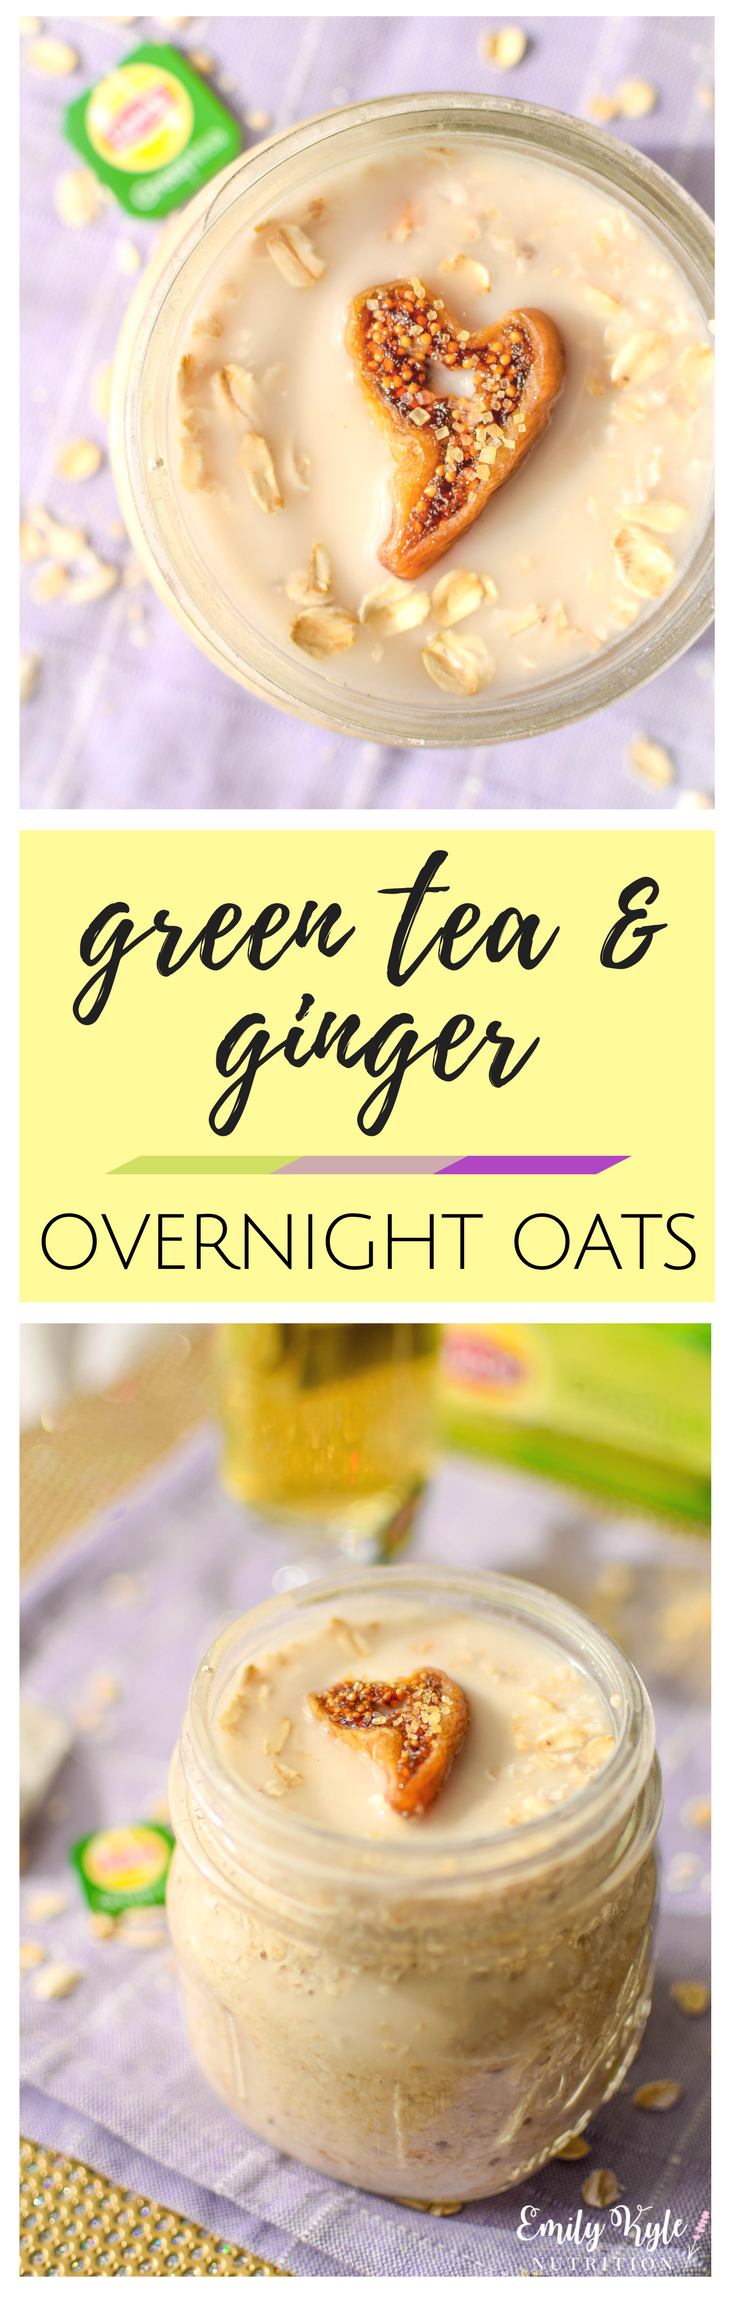 This Lipton® Green Tea & Ginger Overnight Oats recipe takes just 5 minutes to prepare so that you can have a nutritious and delicious breakfast ready to run out the door with you on those busy mornings! #ad